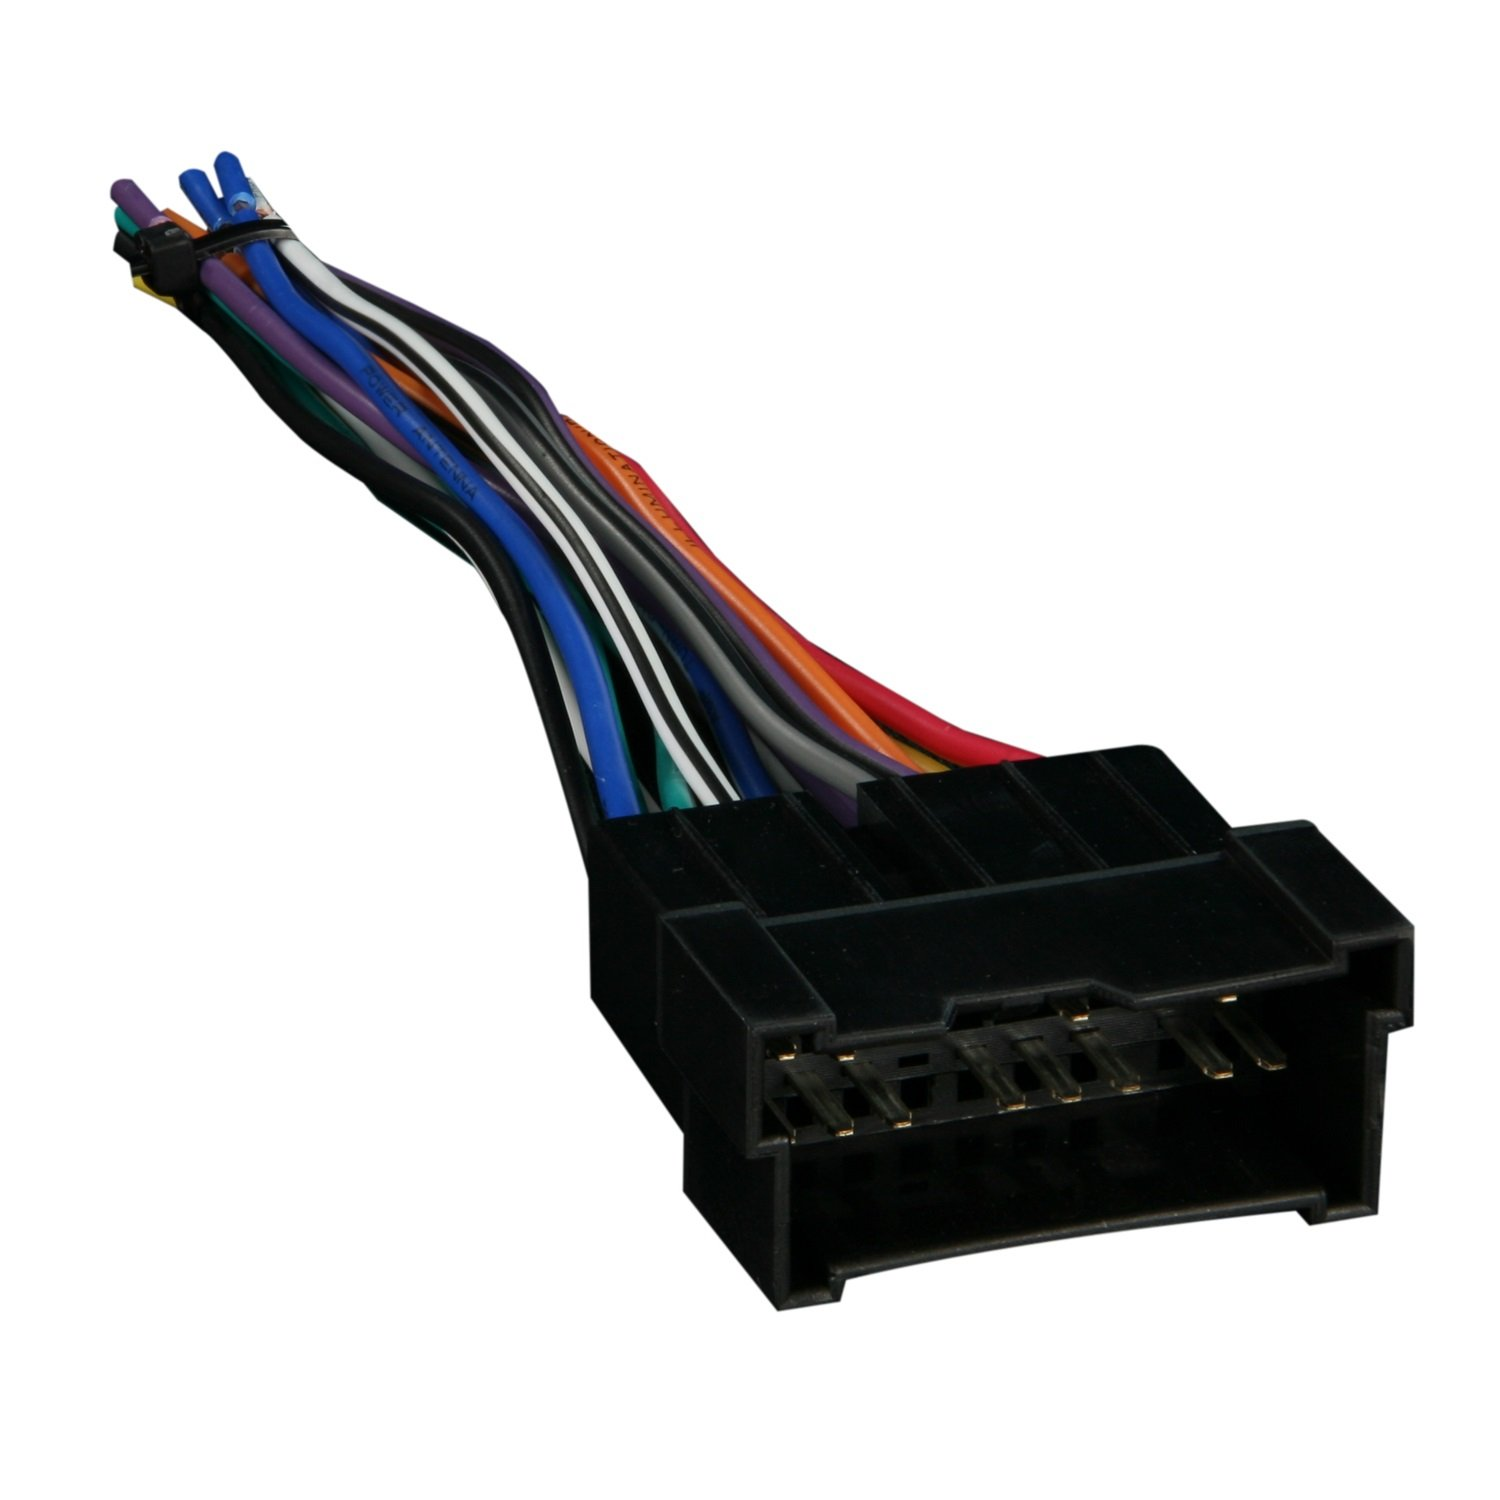 617yeBmOquL._SL1500_ amazon com metra 70 7301 radio wiring harness for hyundai kia 99 GM Factory Radio Wiring Harness at crackthecode.co